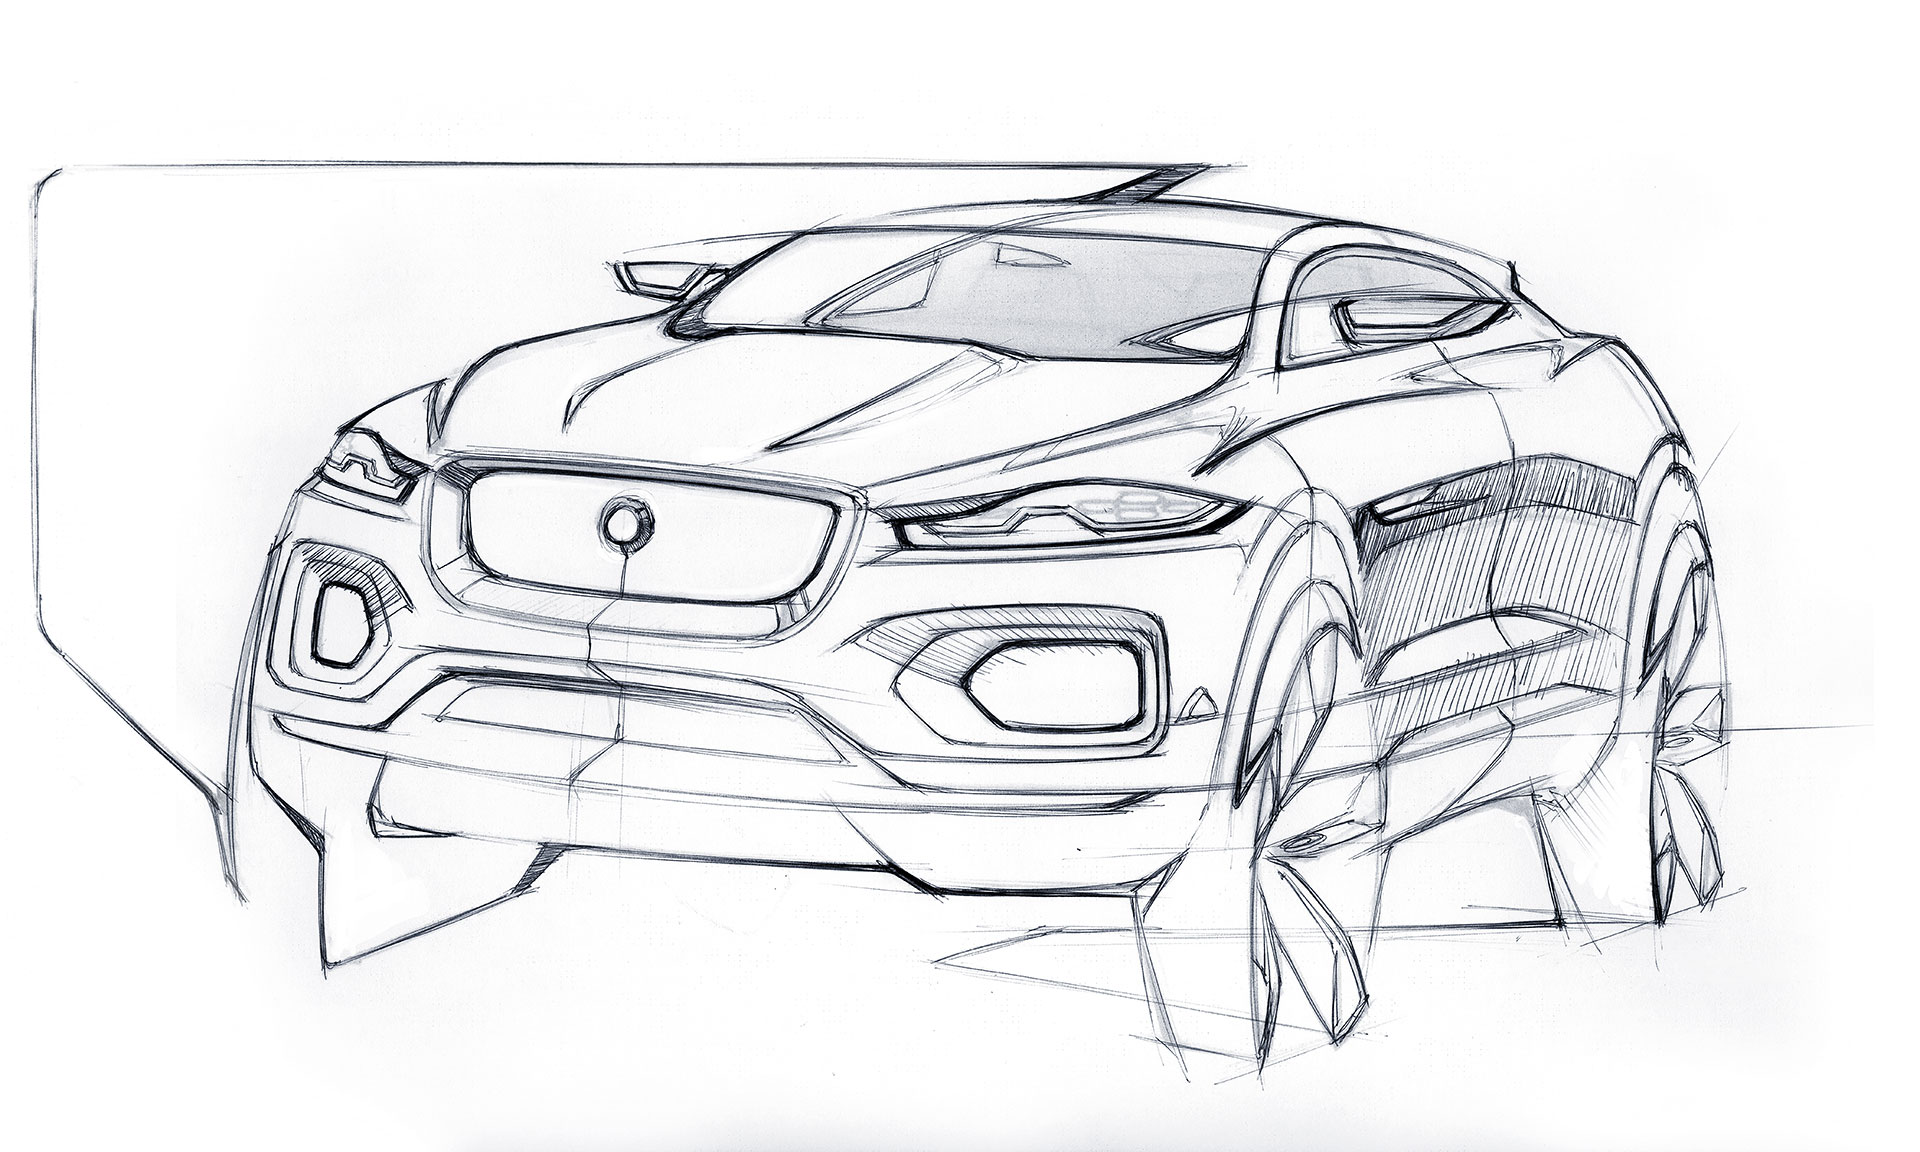 Jaguar C X17 Concept Design Sketch